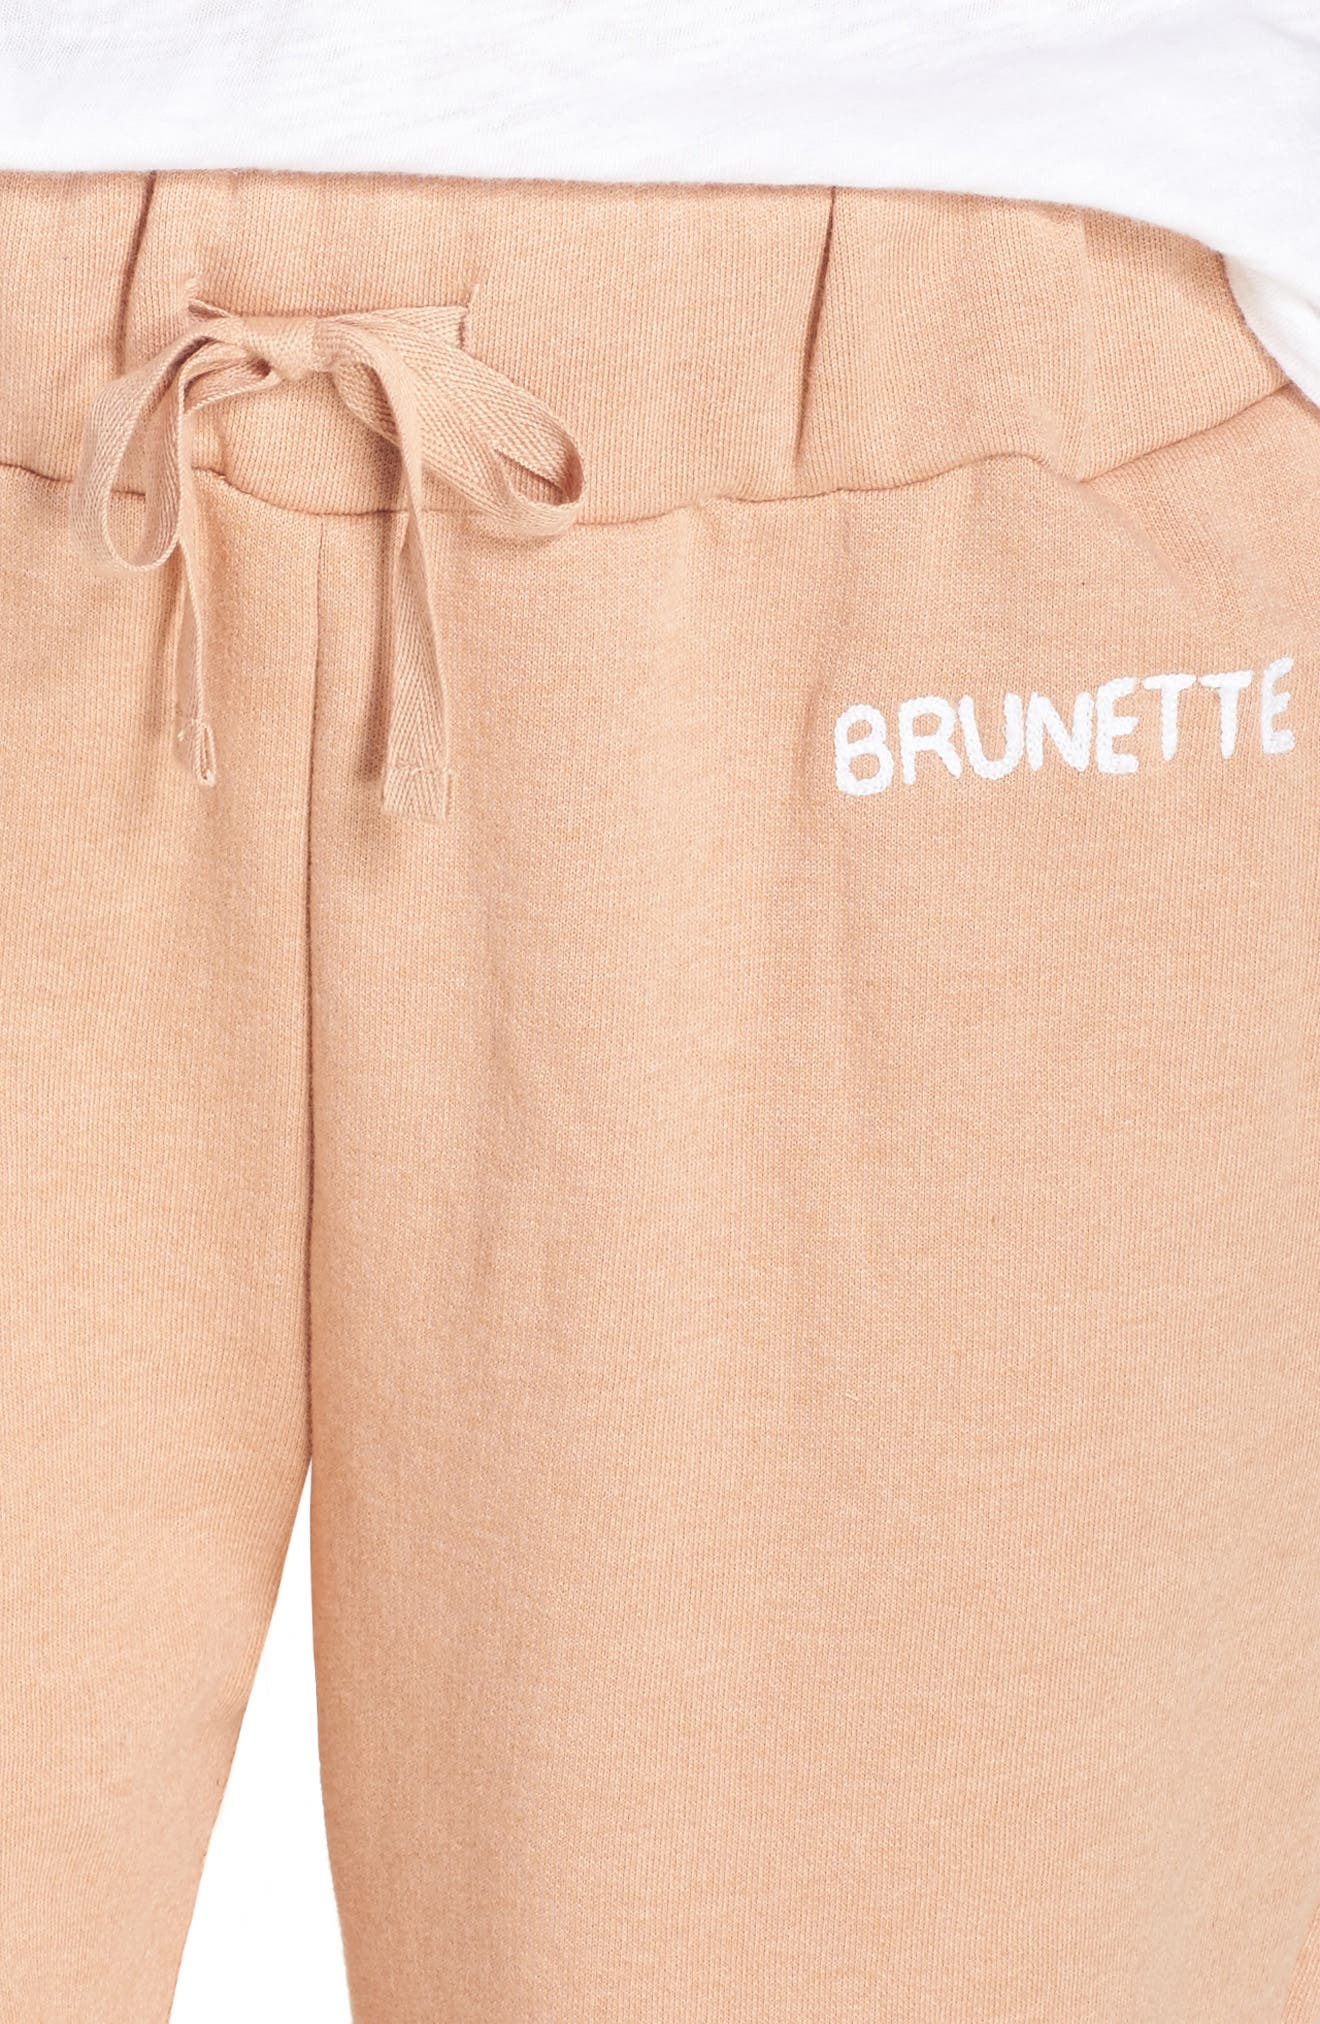 Brunette Jogger Pants,                             Alternate thumbnail 4, color,